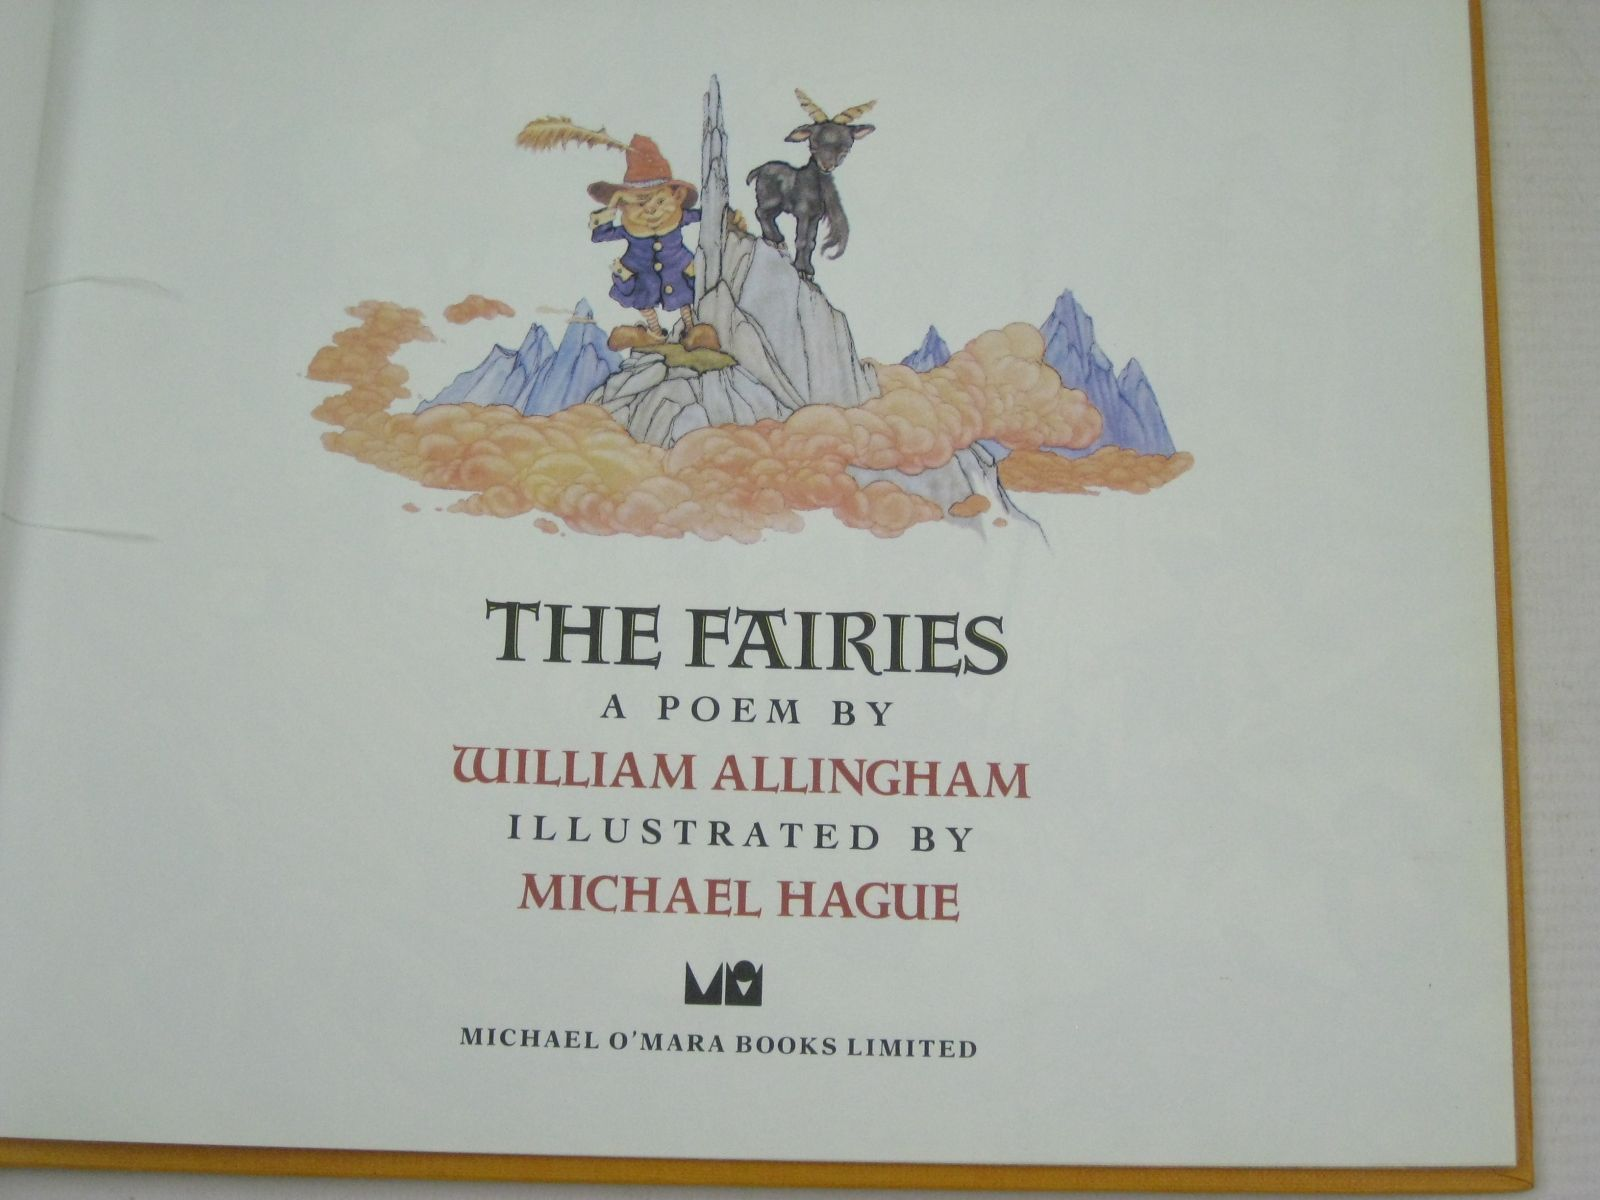 Photo of THE FAIRIES written by Allingham, William illustrated by Hague, Michael published by Michael O'Mara Books Limited (STOCK CODE: 1315956)  for sale by Stella & Rose's Books